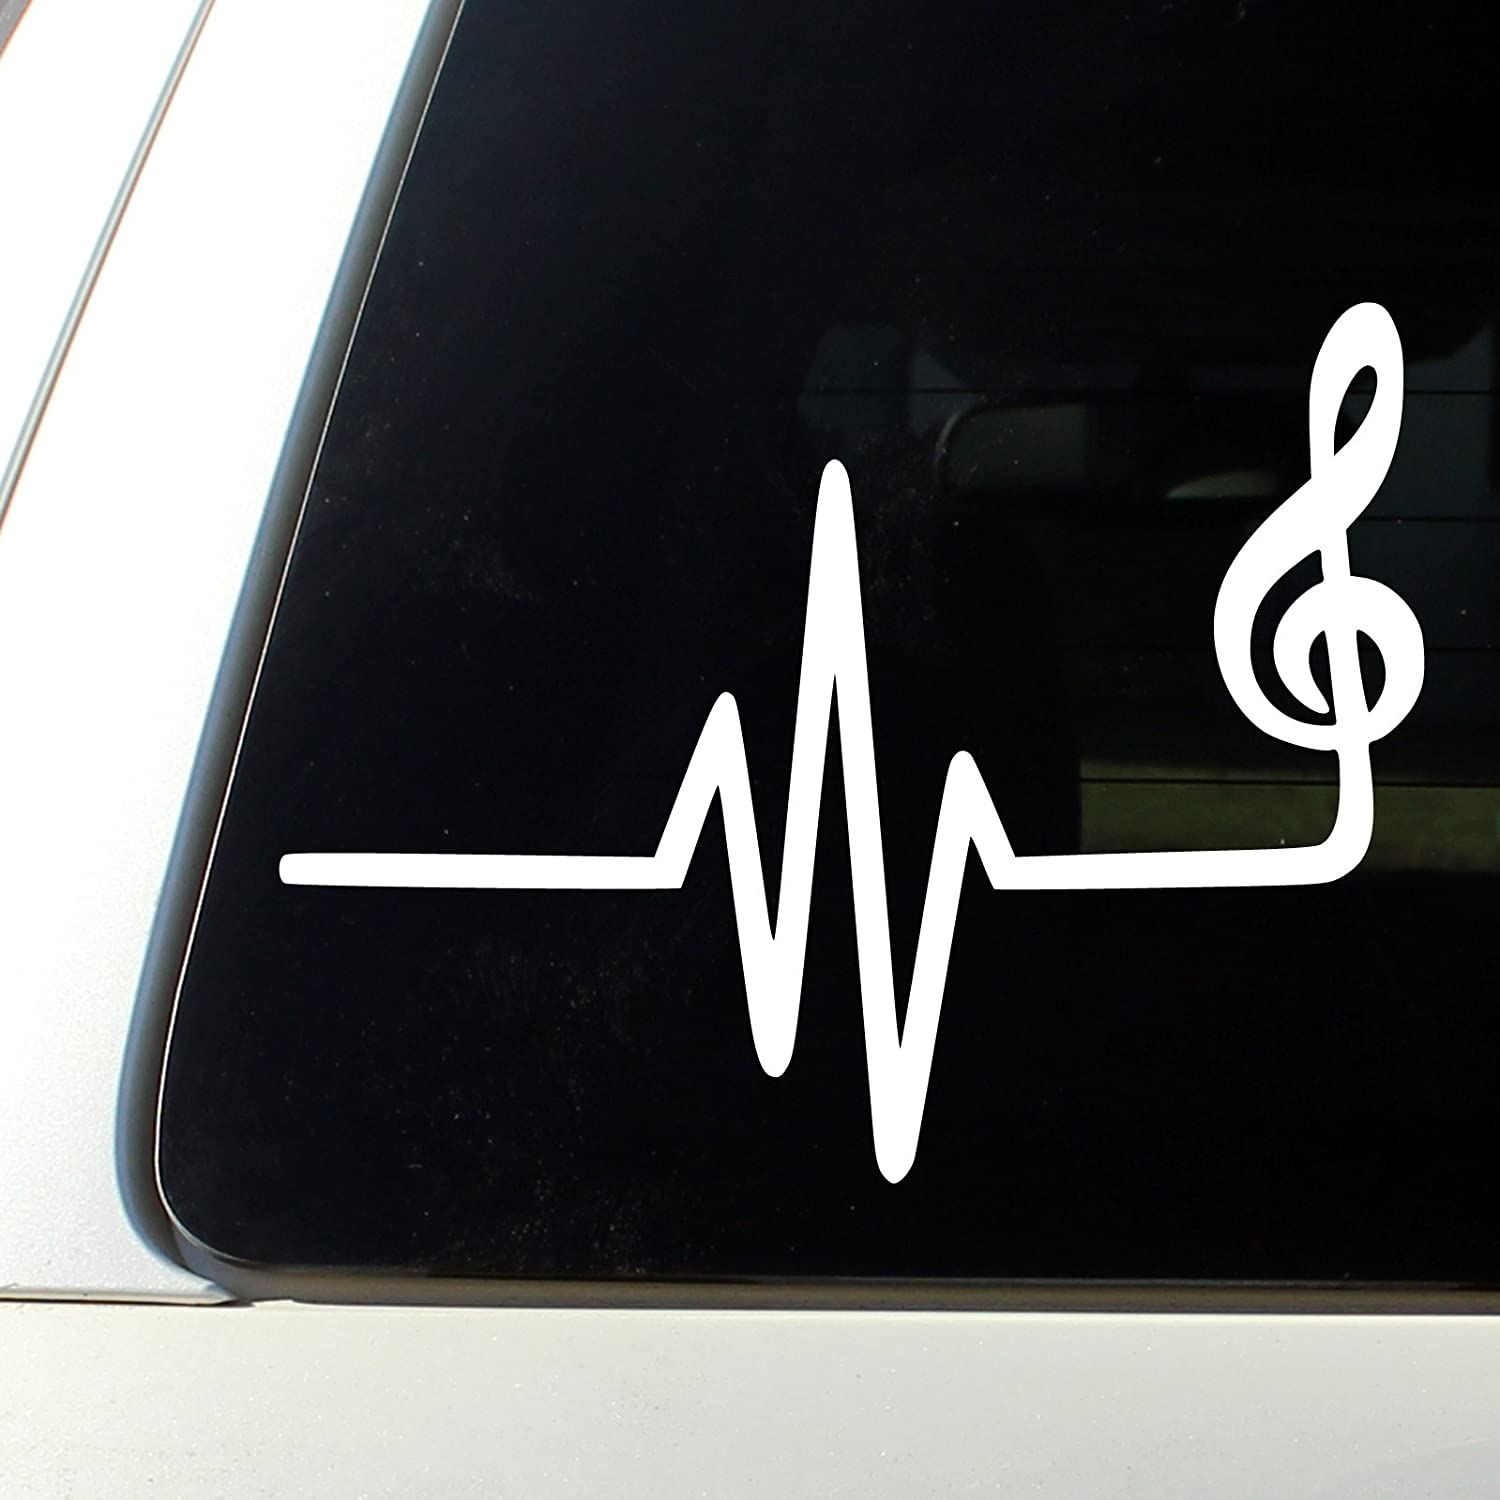 Amazoncom Music Heart Beat Sticker Bumper Decal Car Automotive - Customized car decals and graphics